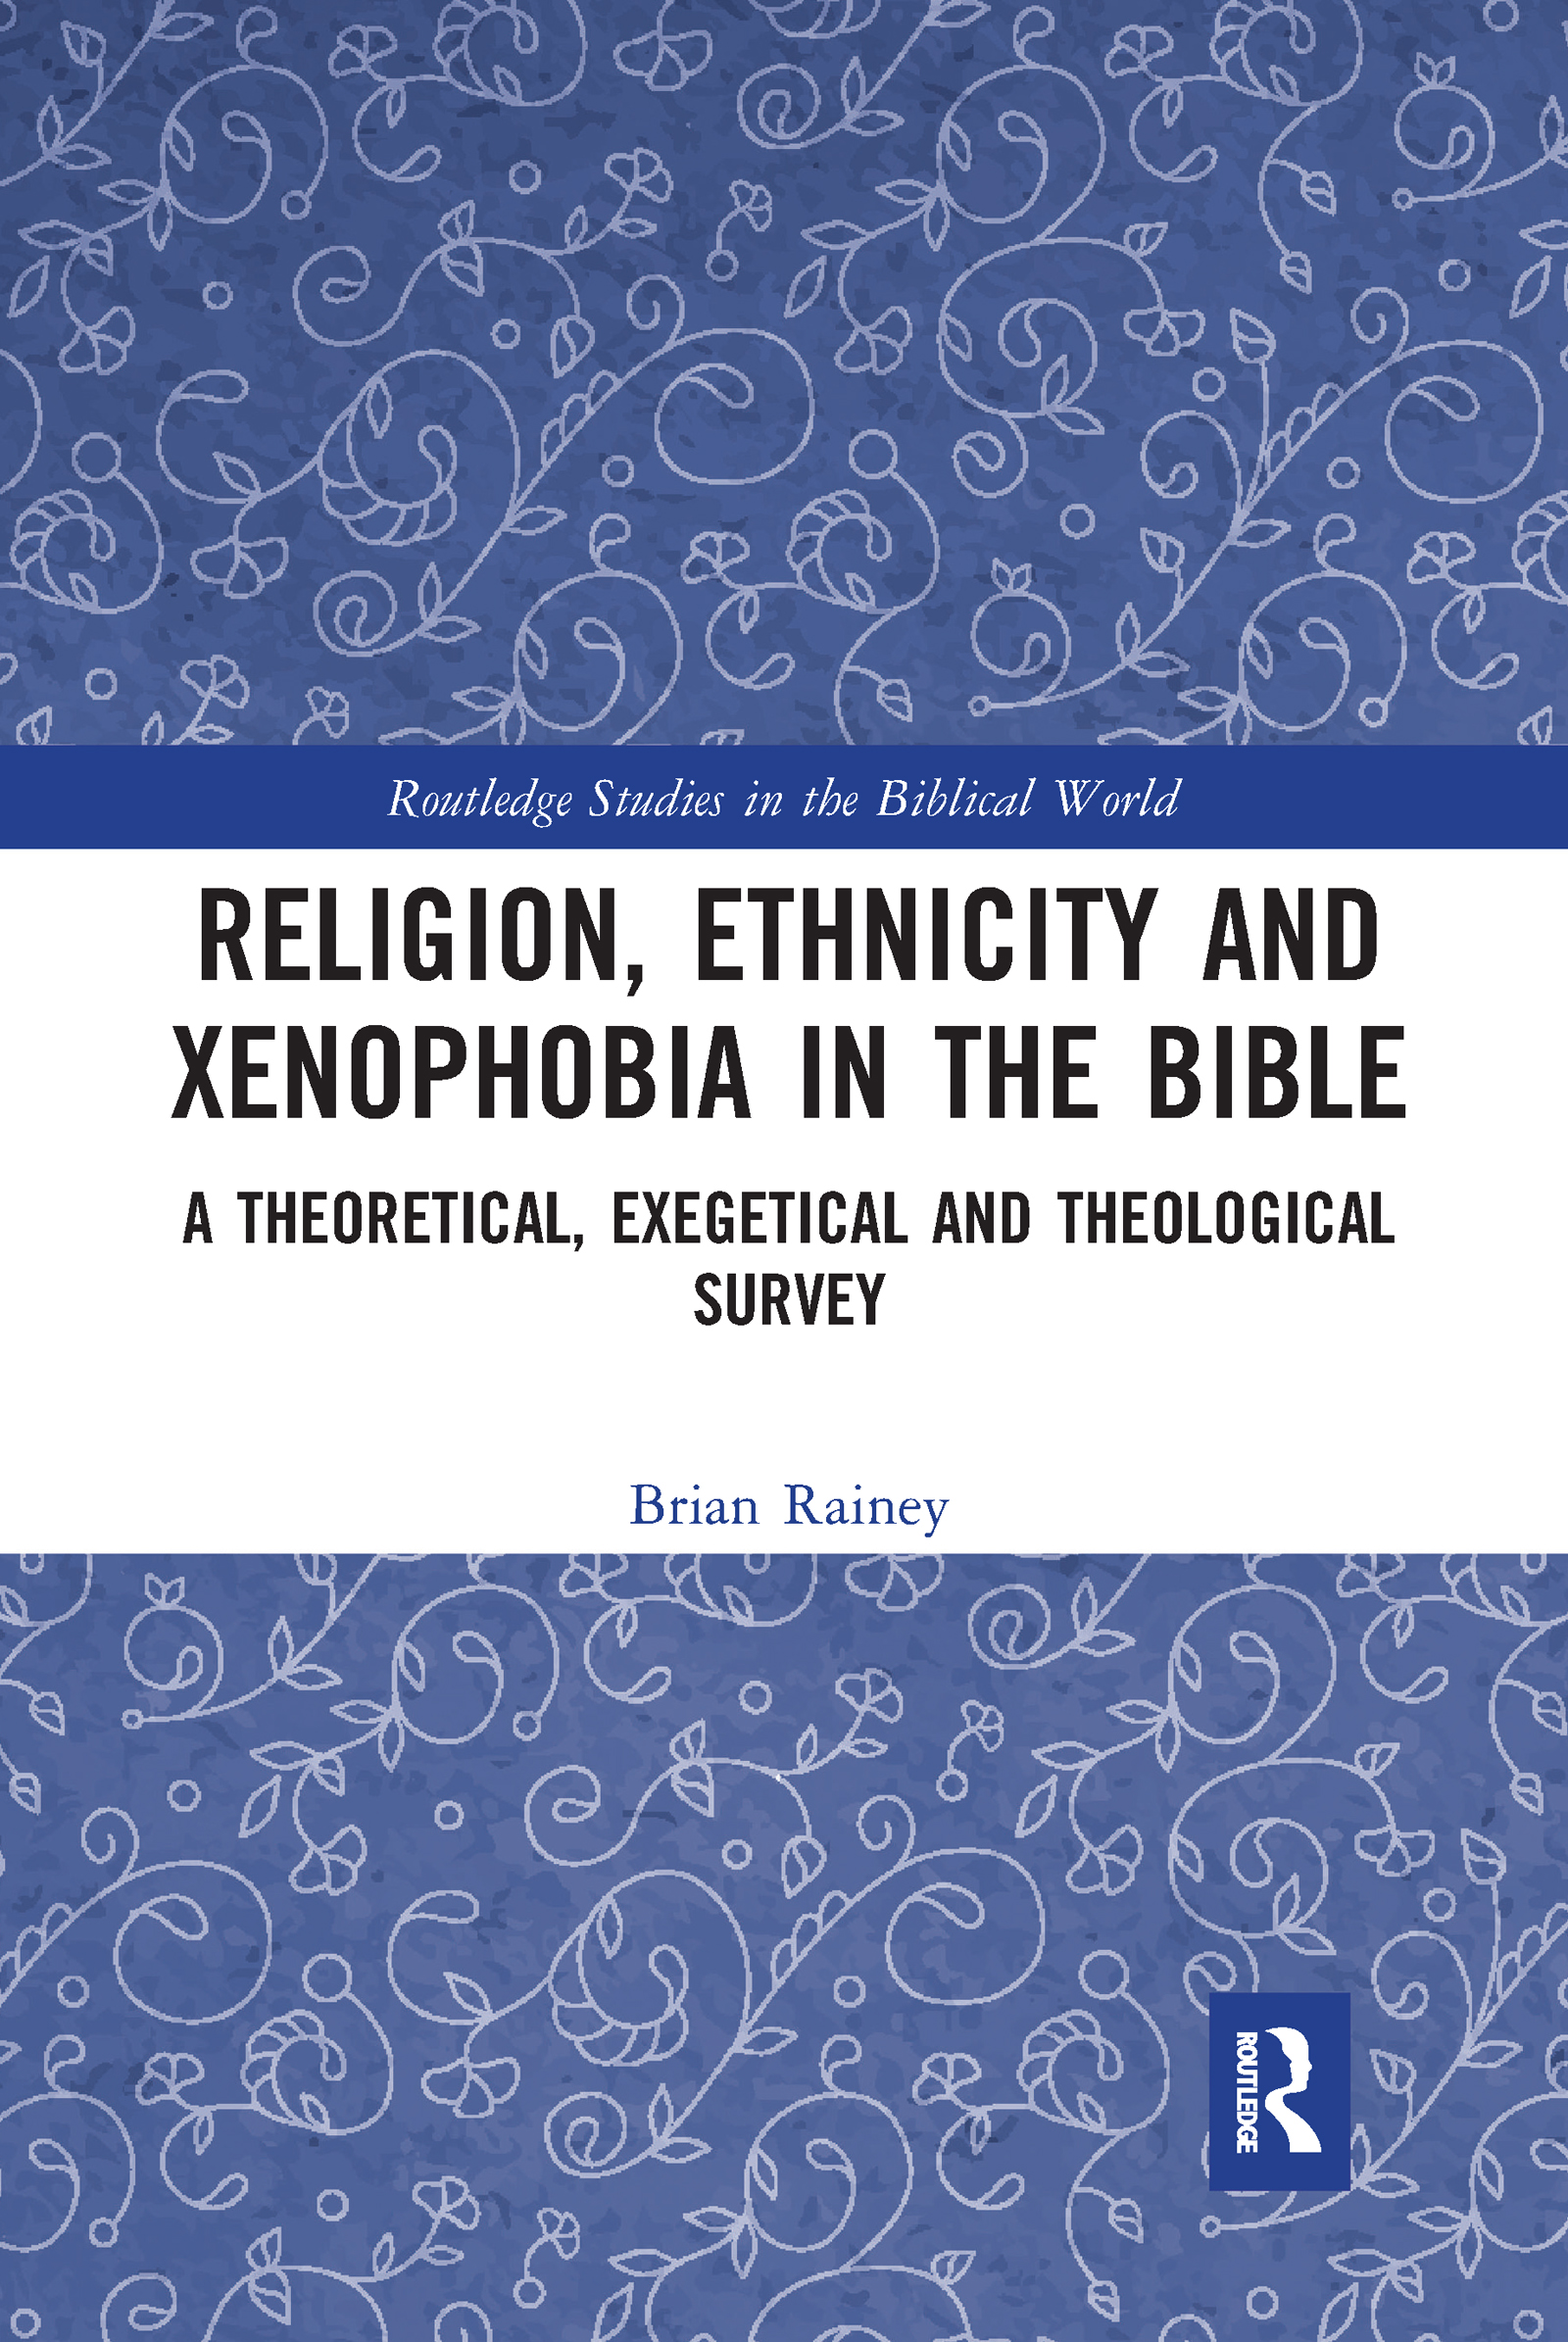 Religion, Ethnicity and Xenophobia in the Bible